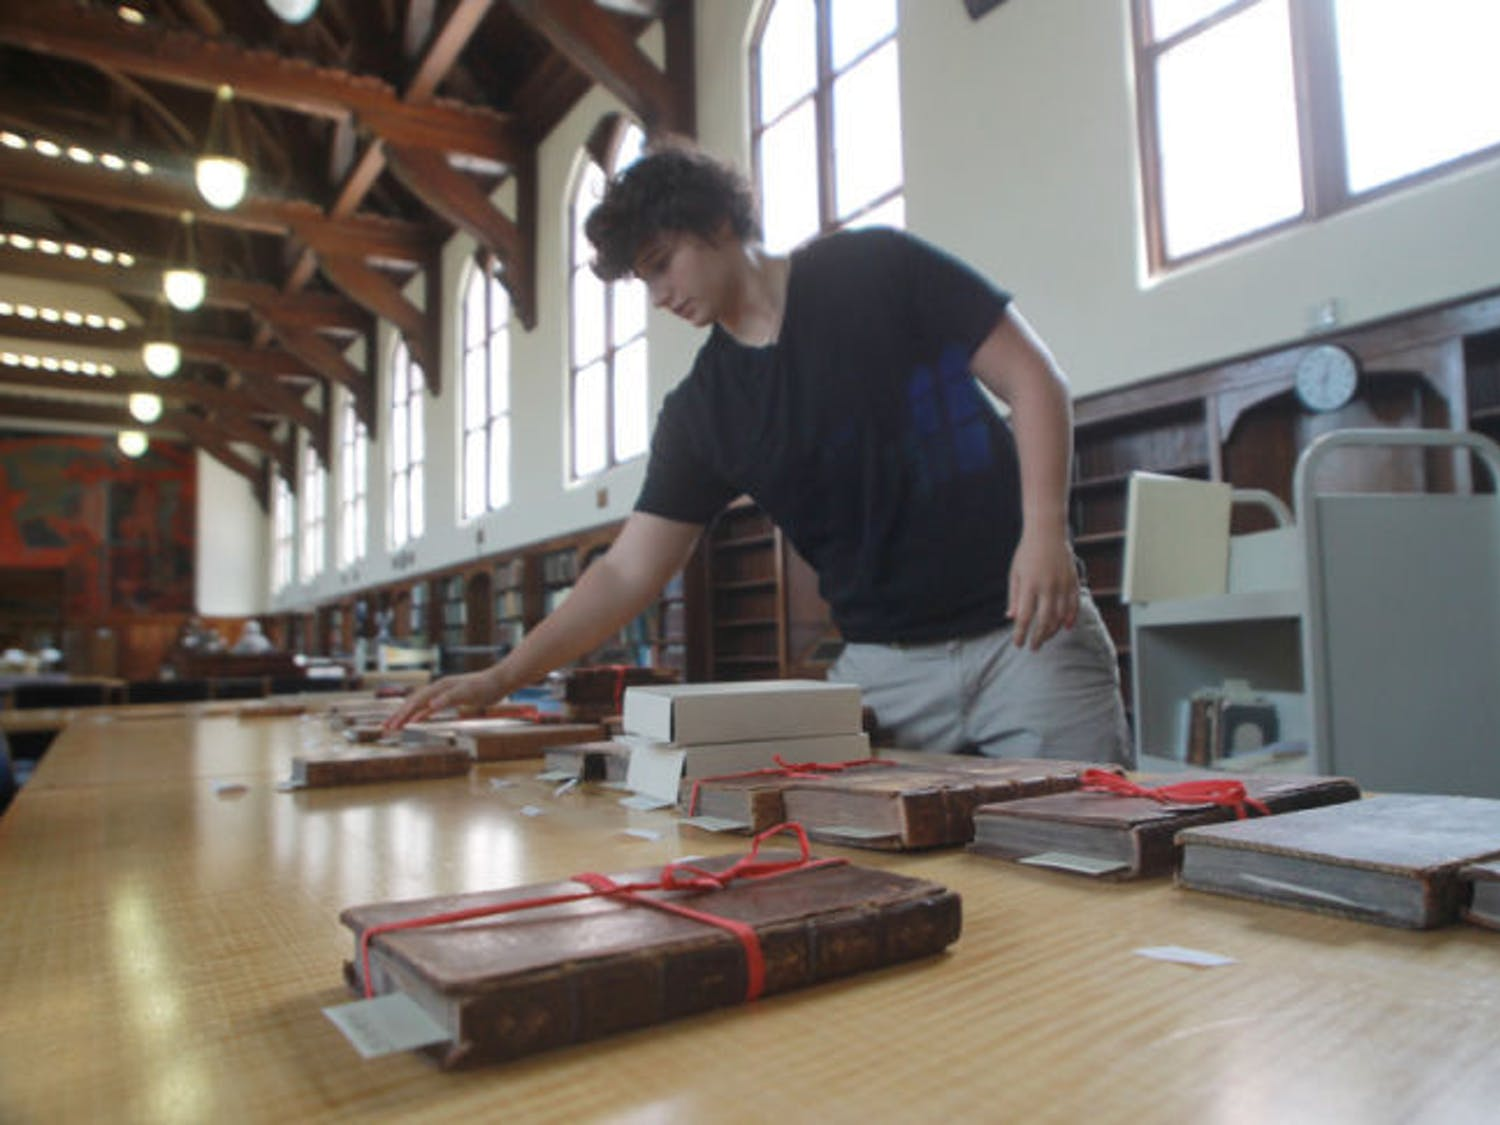 English senior Claudia Perlini, 22, sifts through a collection of 17th and 18th century children's literature in the University Archives in the George A. Smathers Libraries. The libraries were awarded funding from the National Endowment for the Humanities to digitize approximately 100,000 pages of historic newspapers.